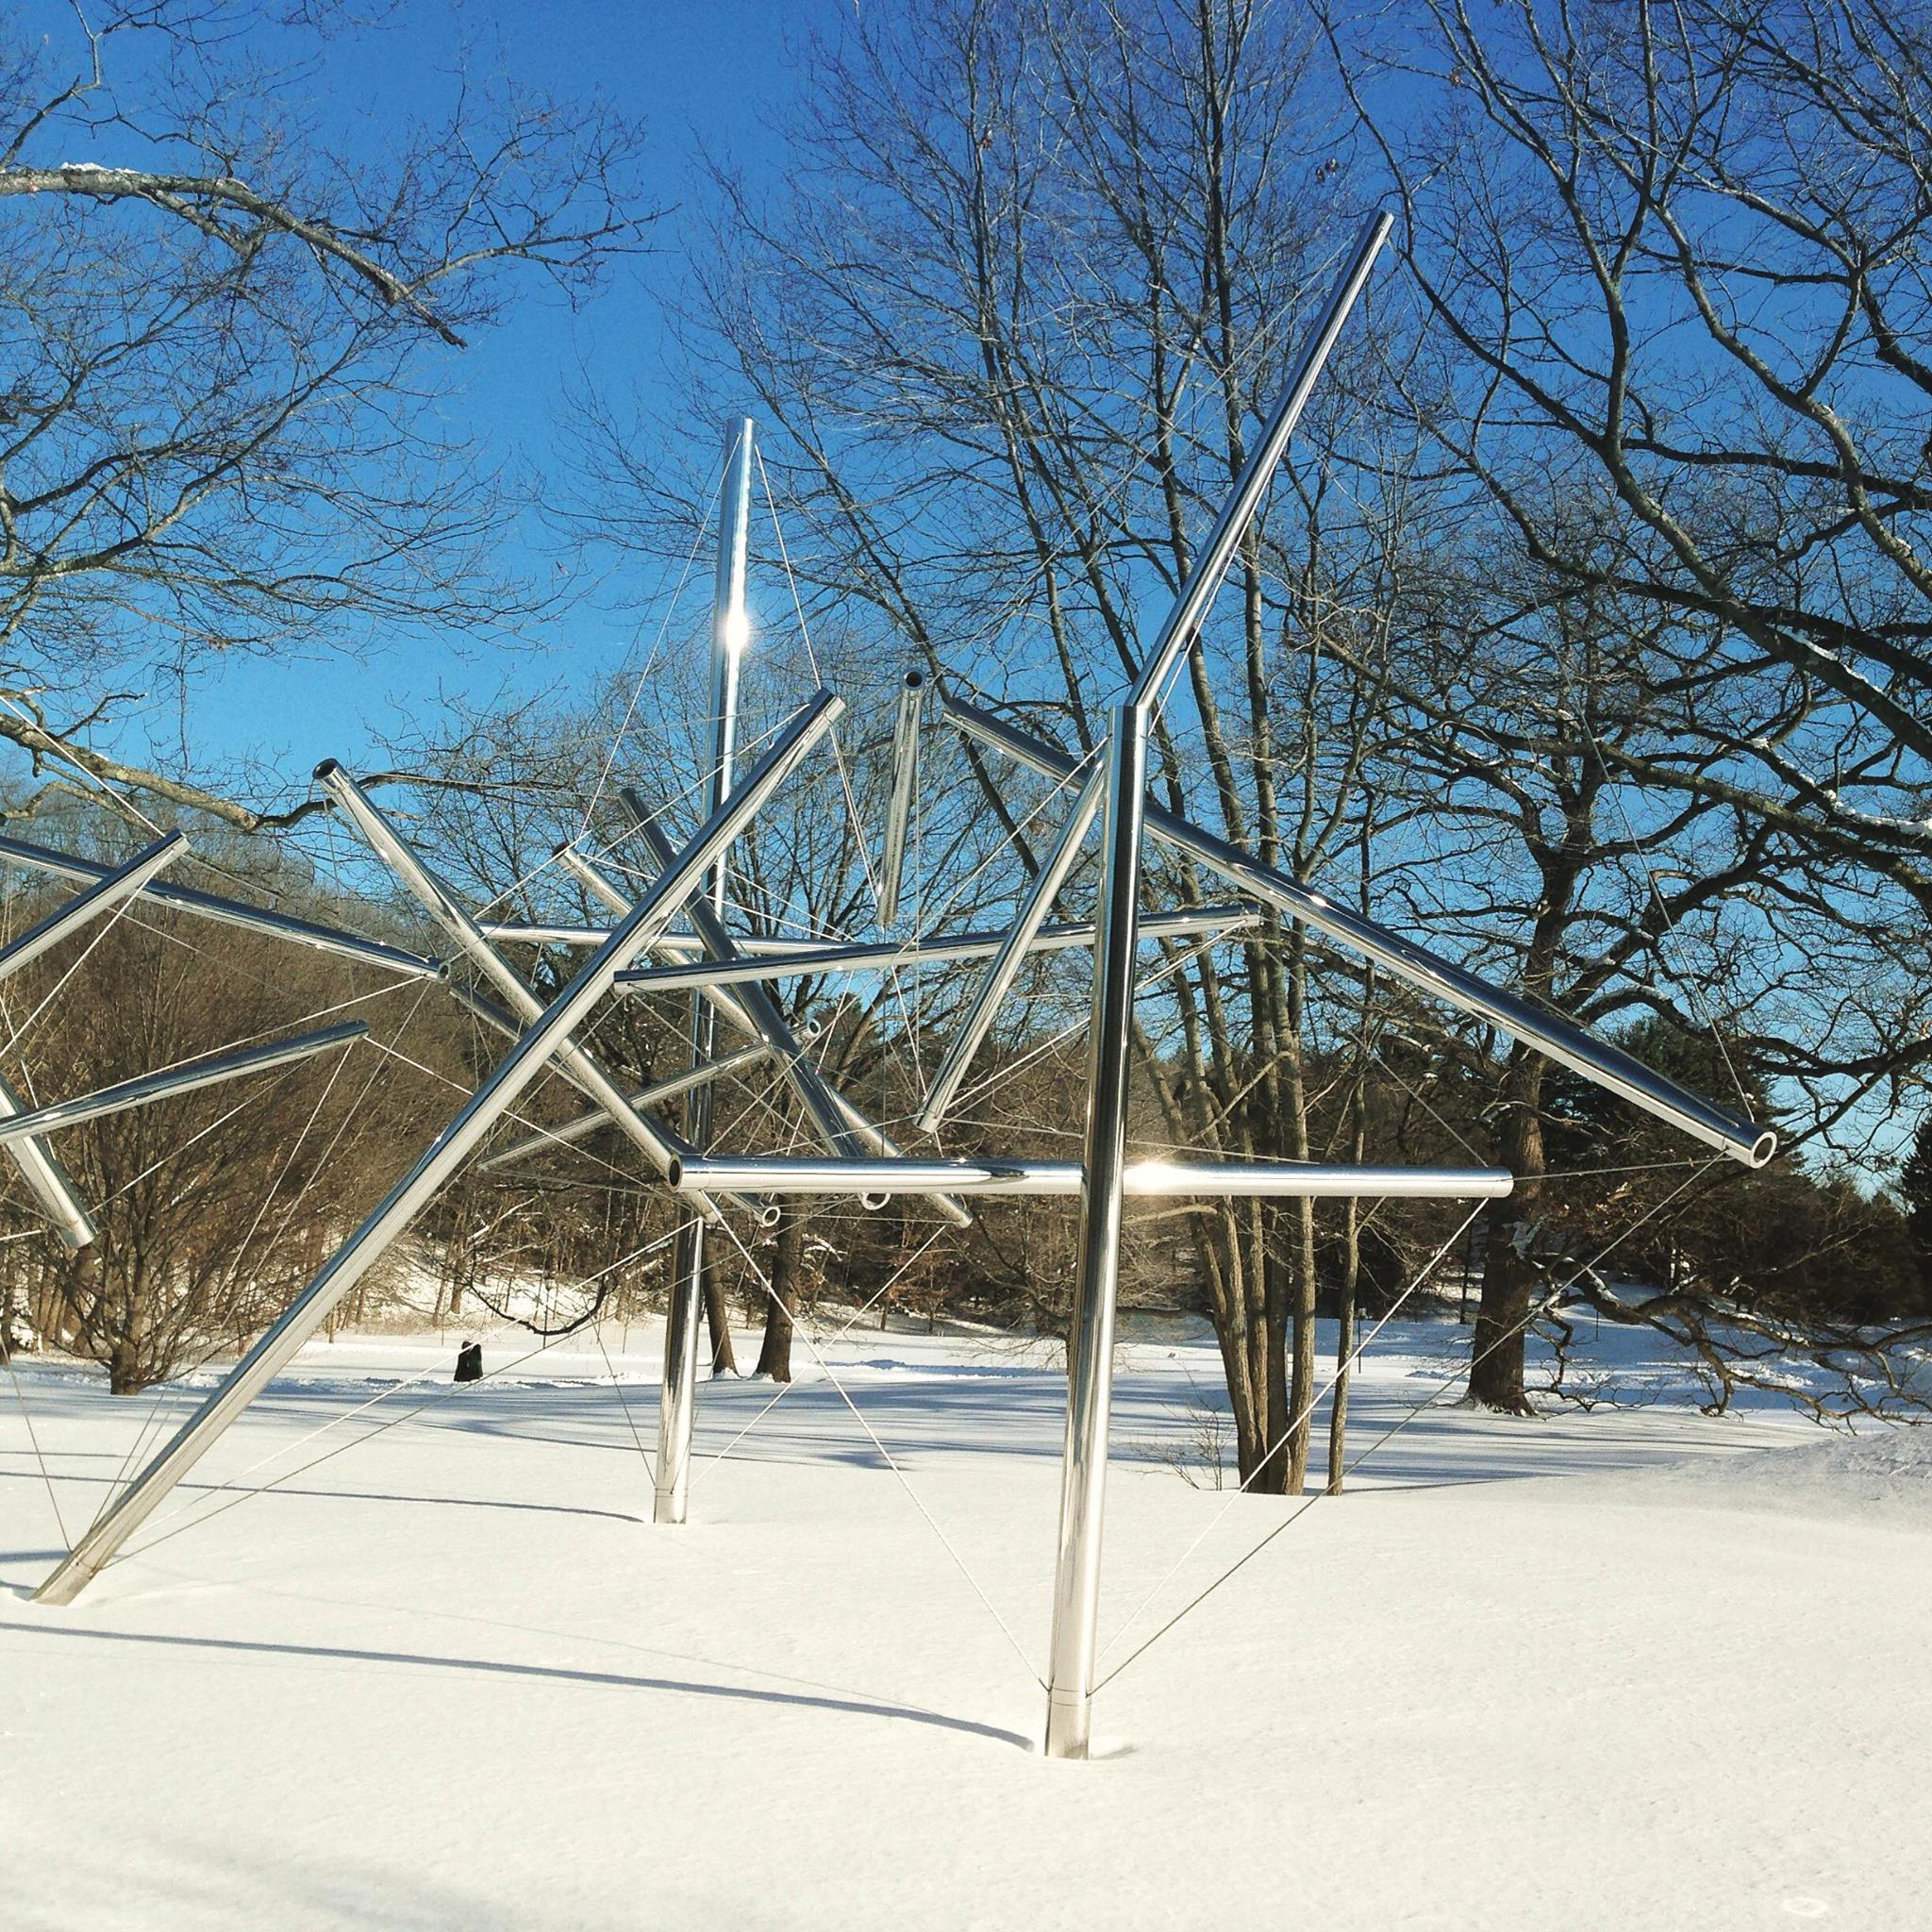 Kenneth Snelson's Mozart III sculpture at Wellesley College